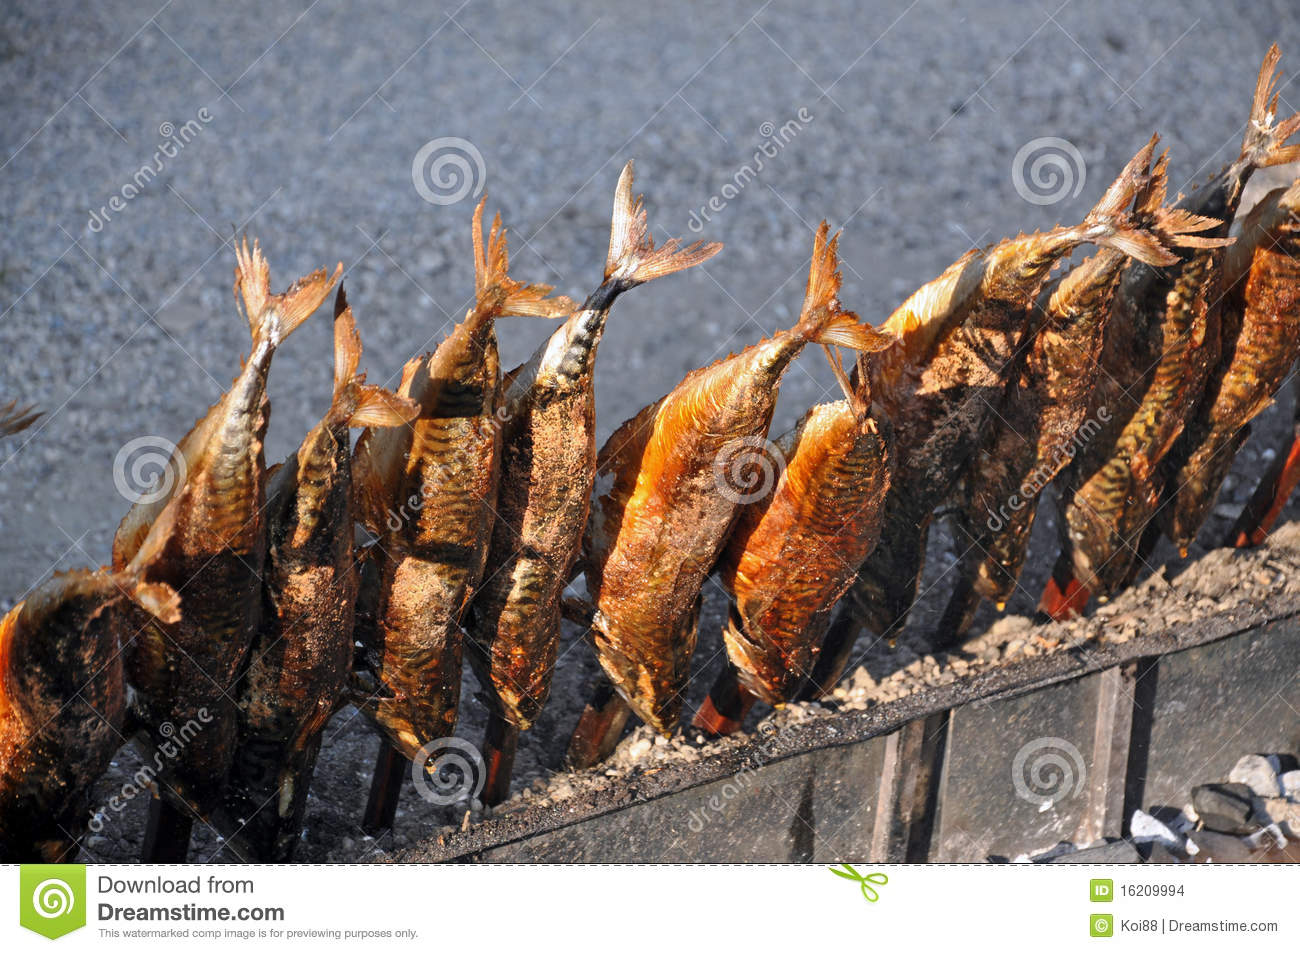 Steckerlfisch fish on a stick stock images image 16209994 for Fish on a stick